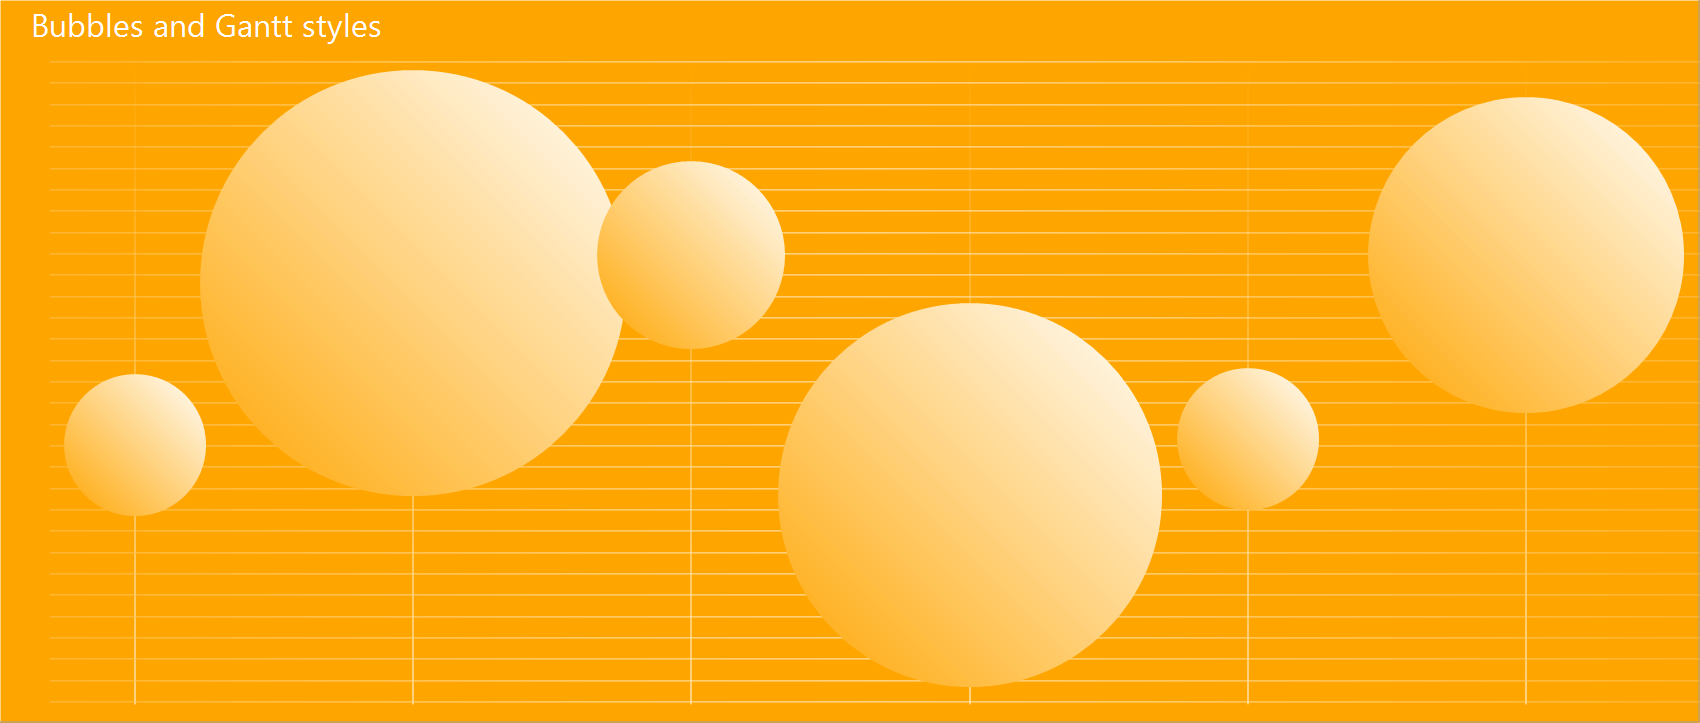 Displaying a Bubble Chart with variable size circular symbols to represent data